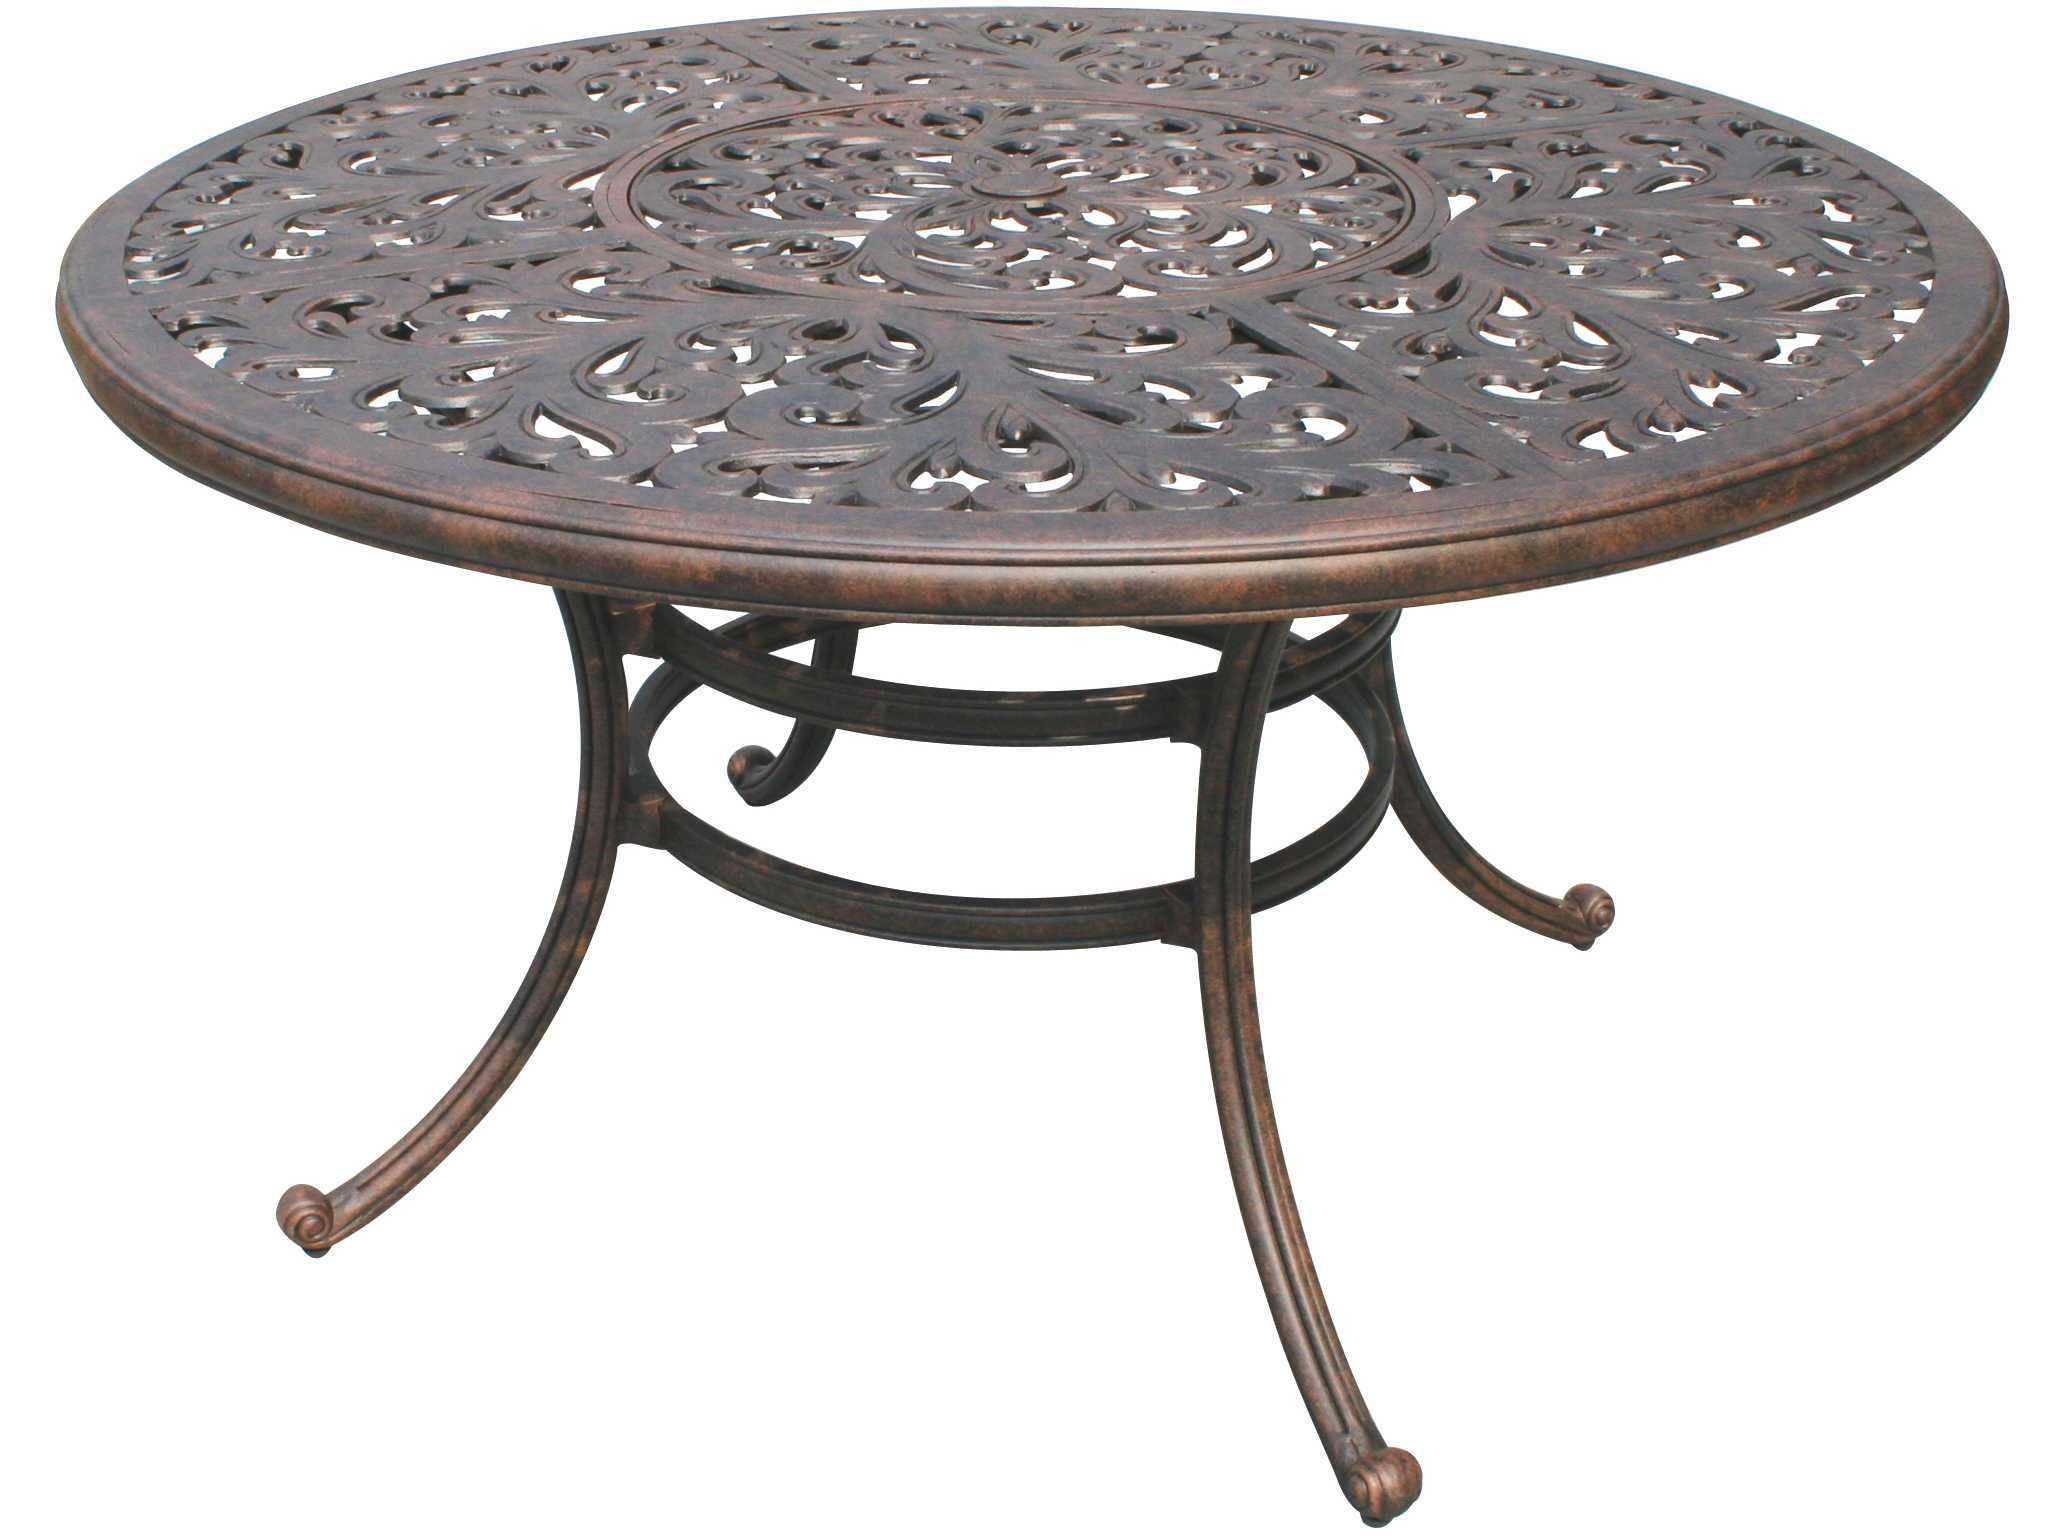 80 cast aluminum antique bronze 52 round dining table with ice bucket